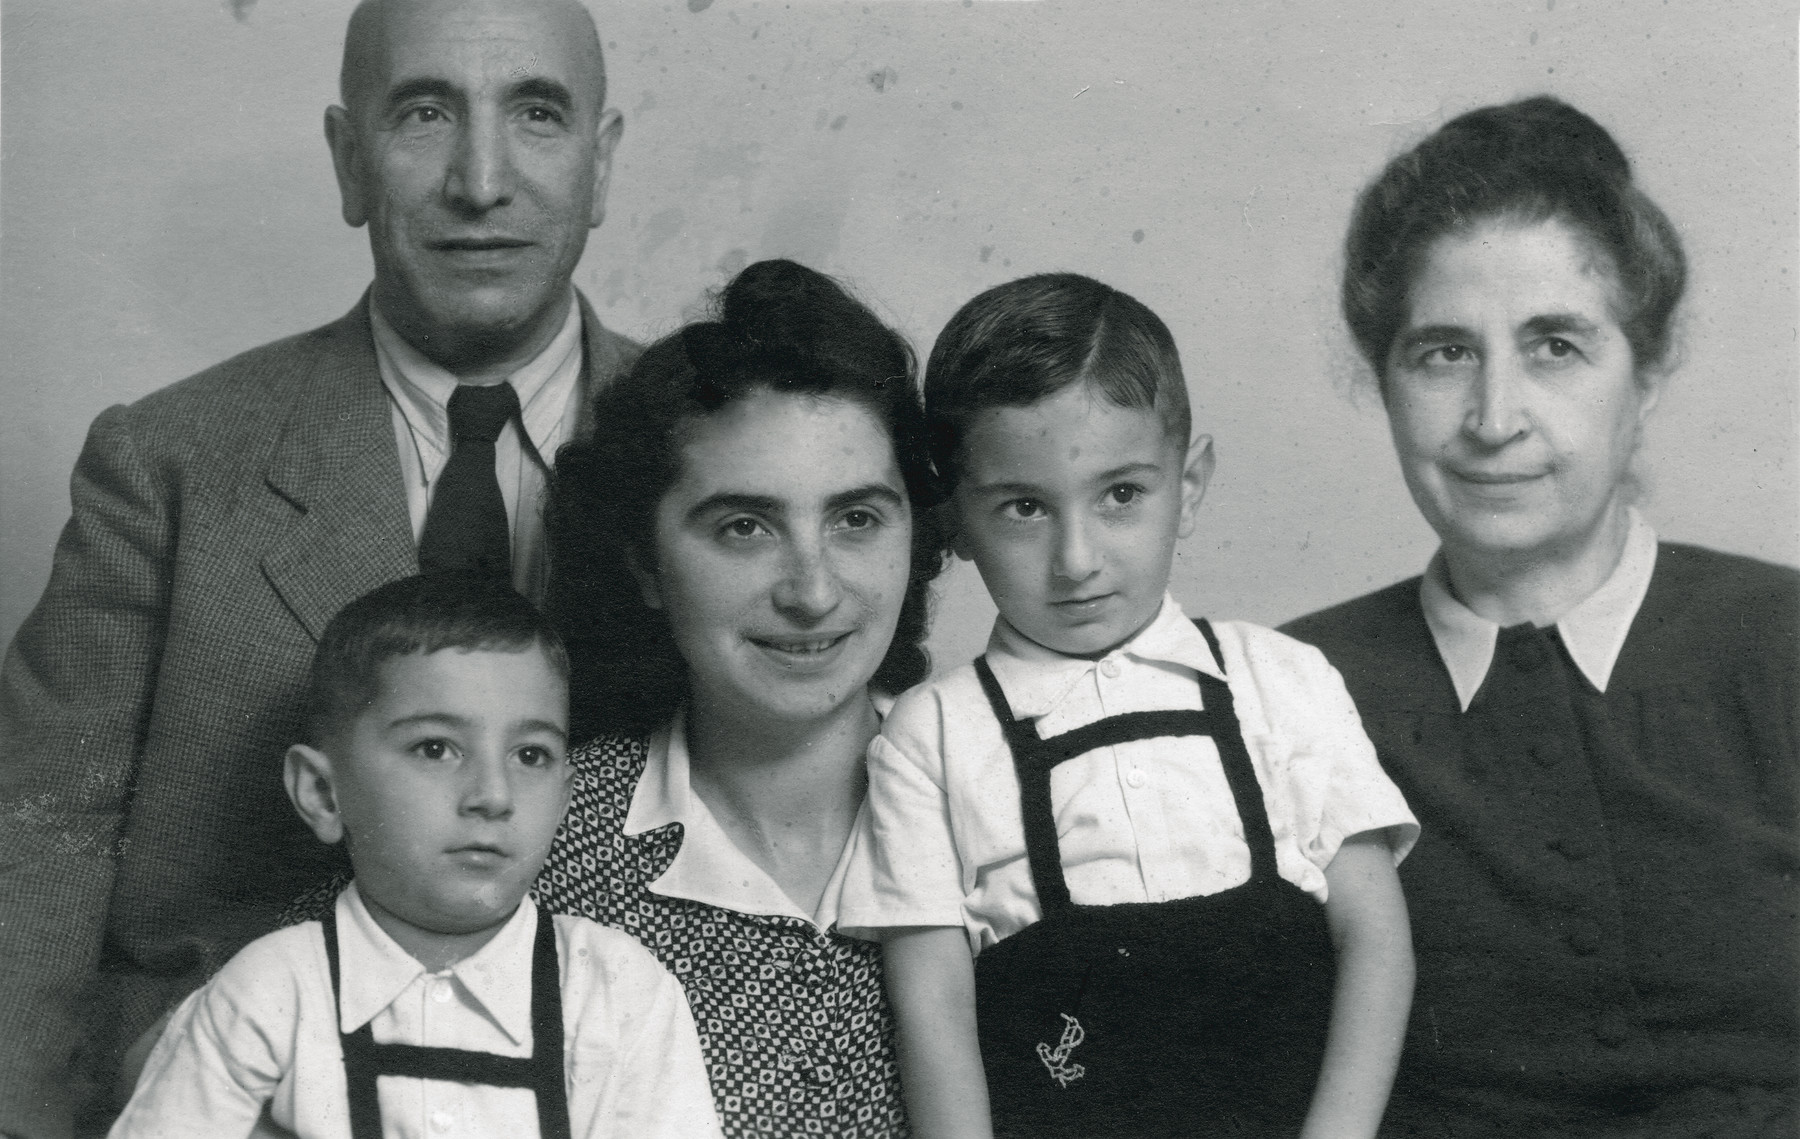 Studio portrait of the Kabillo Finci family.  Pictured are Ella (Kabilio) Finci, her twin sons, Shmuel and Avraham Finci, and her parents, Albert and Blanka Kabilio.